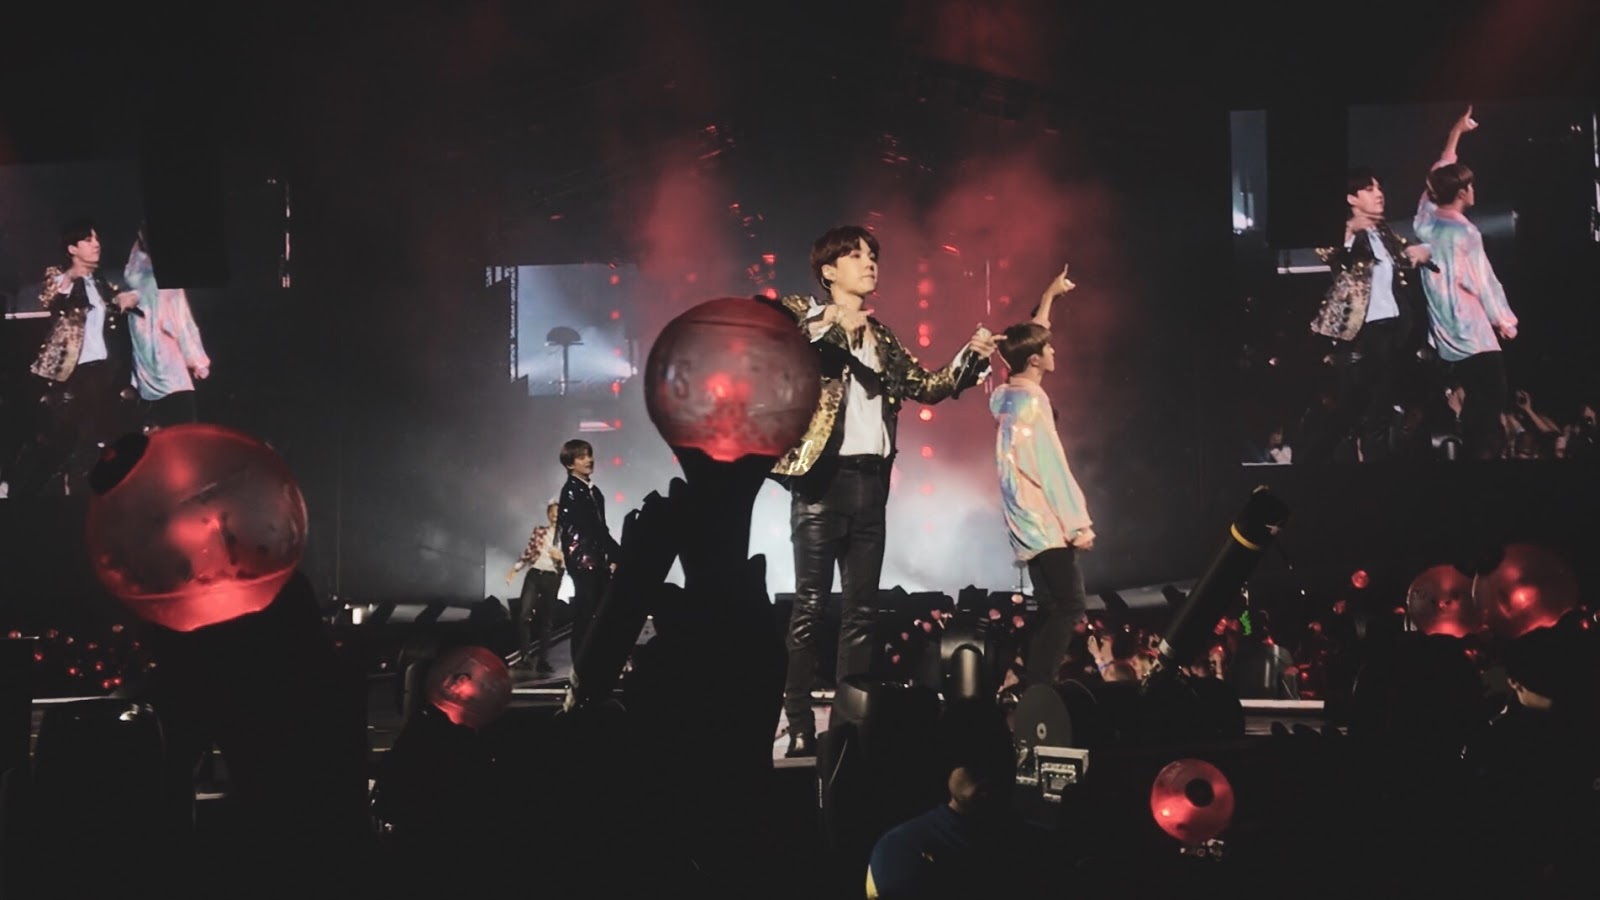 BTS LOVE YOURSELF TOUR IN LONDON – CONCERT EXPERIENCE +